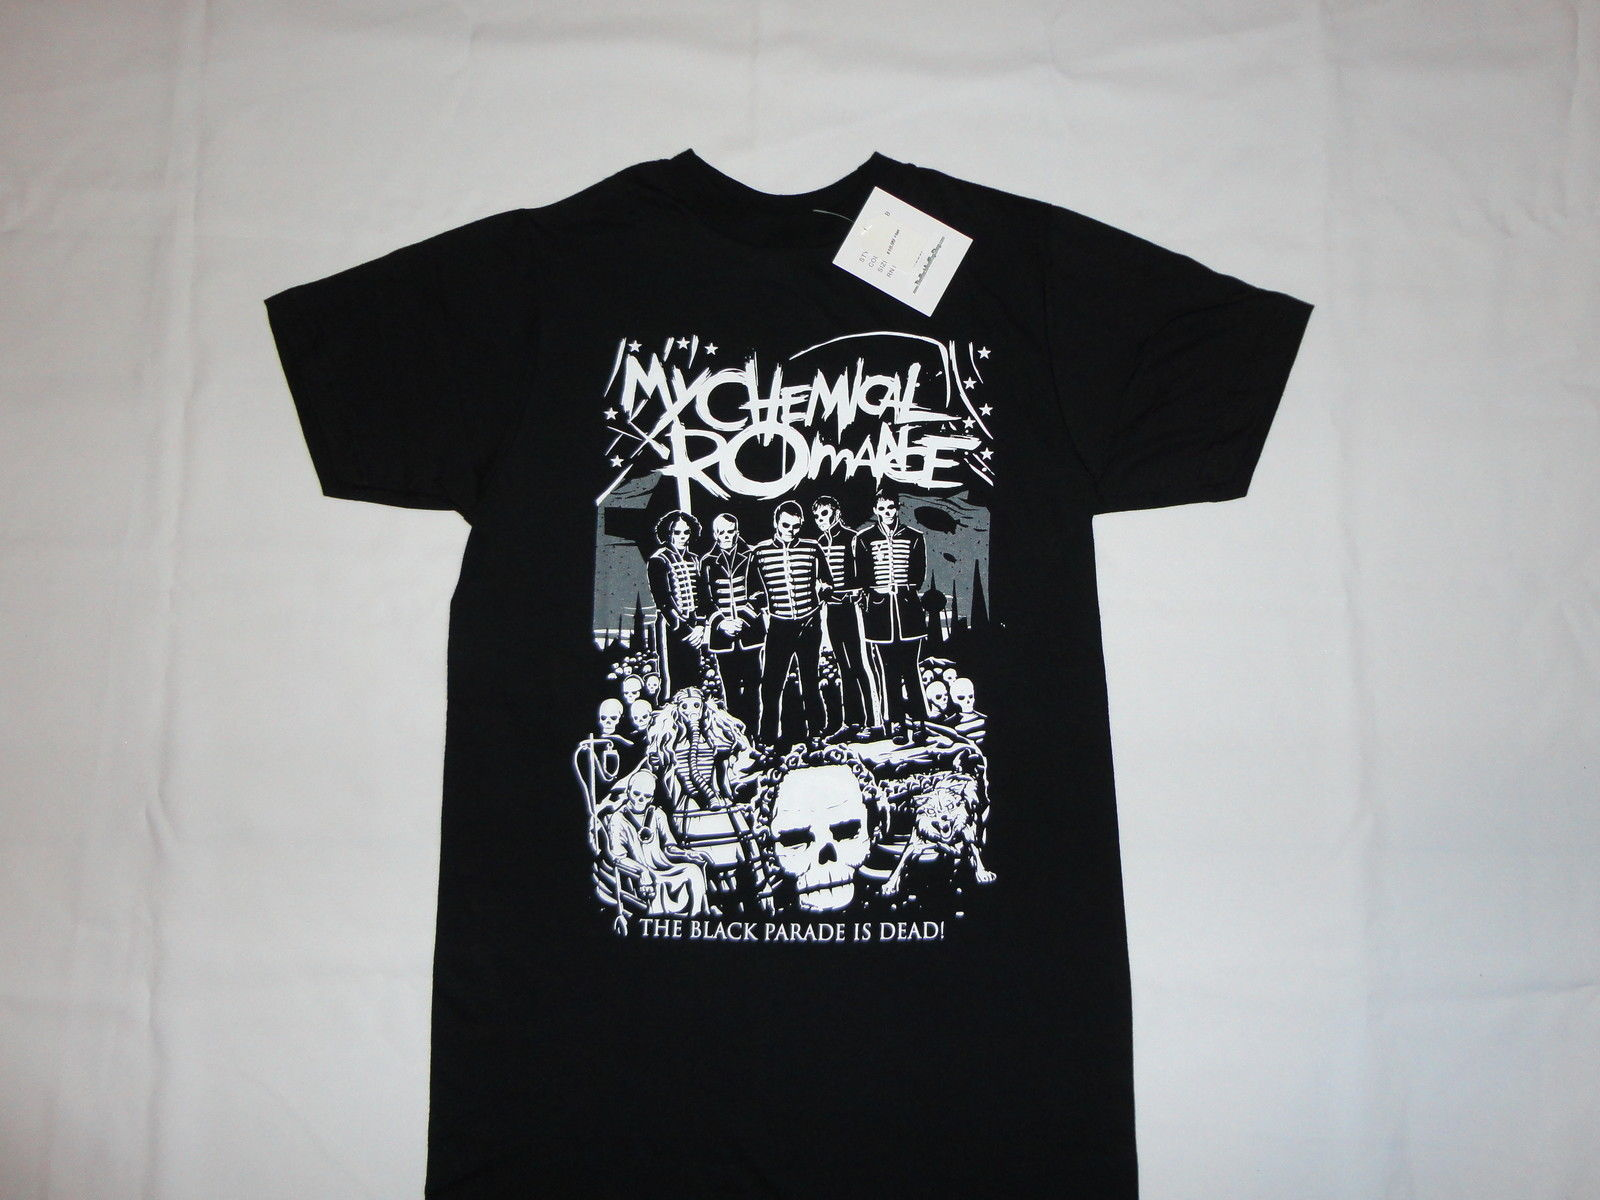 My Chemical Romance Mcr Dead New T Shirt S 3Xl Black Parade Punk Emo Rock Summer T Shirt New 2017 Summer Fashion Top Tee 011608